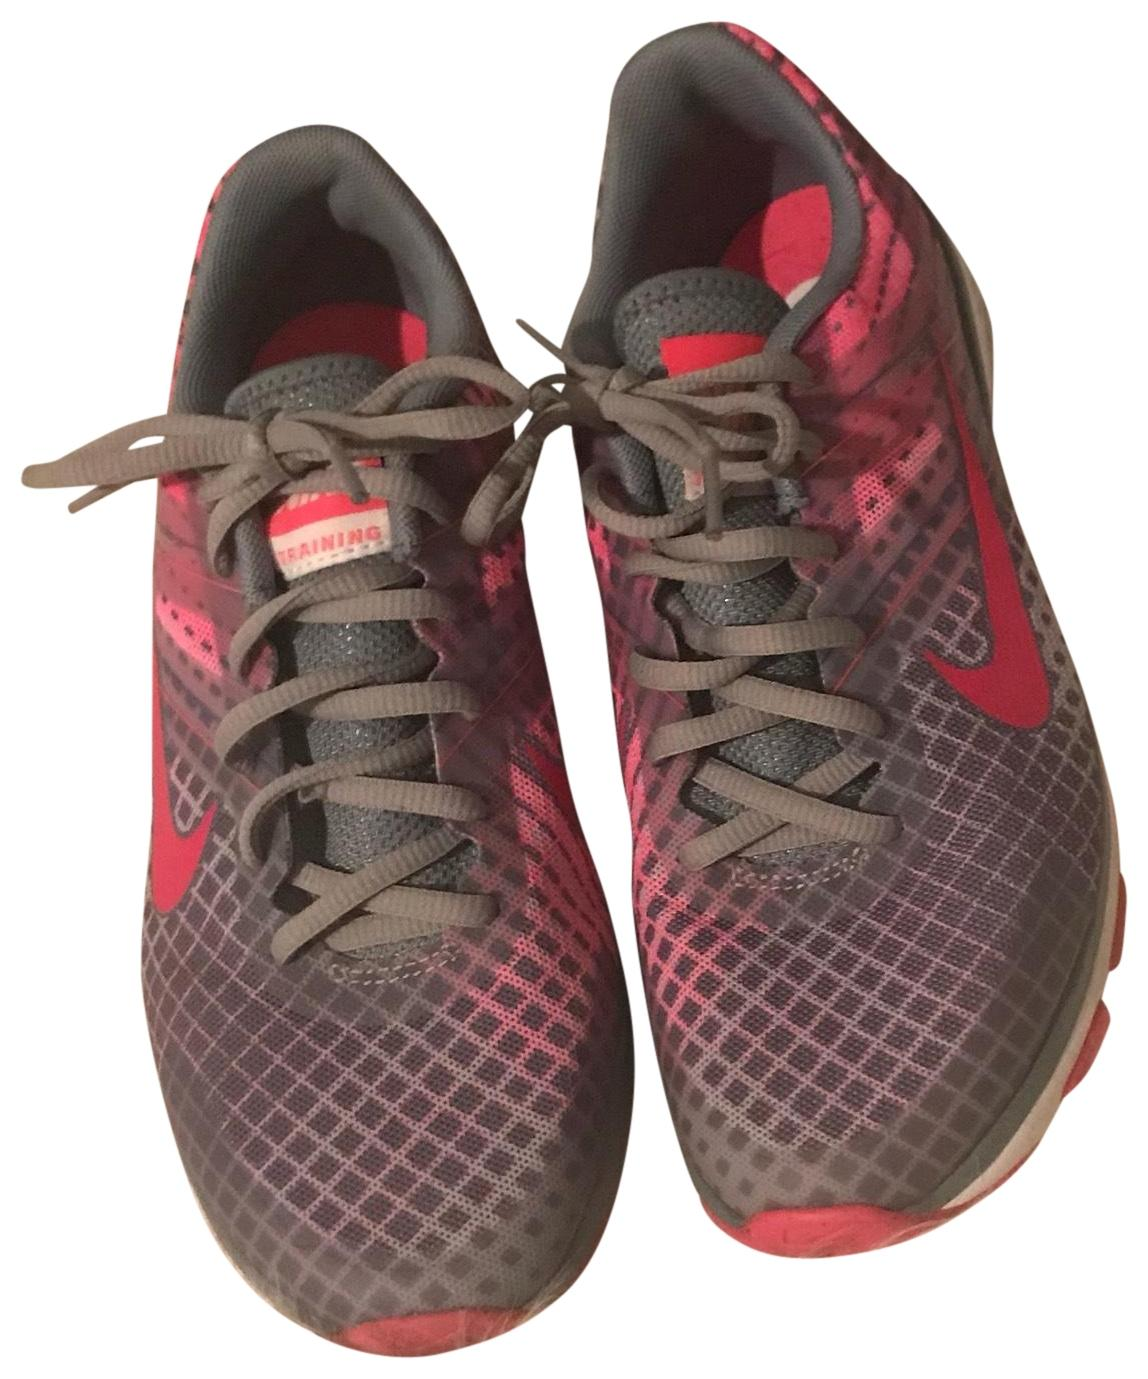 Nike Dual Fusion Flywire Sneakers Size US 6.5 Regular (M, B)